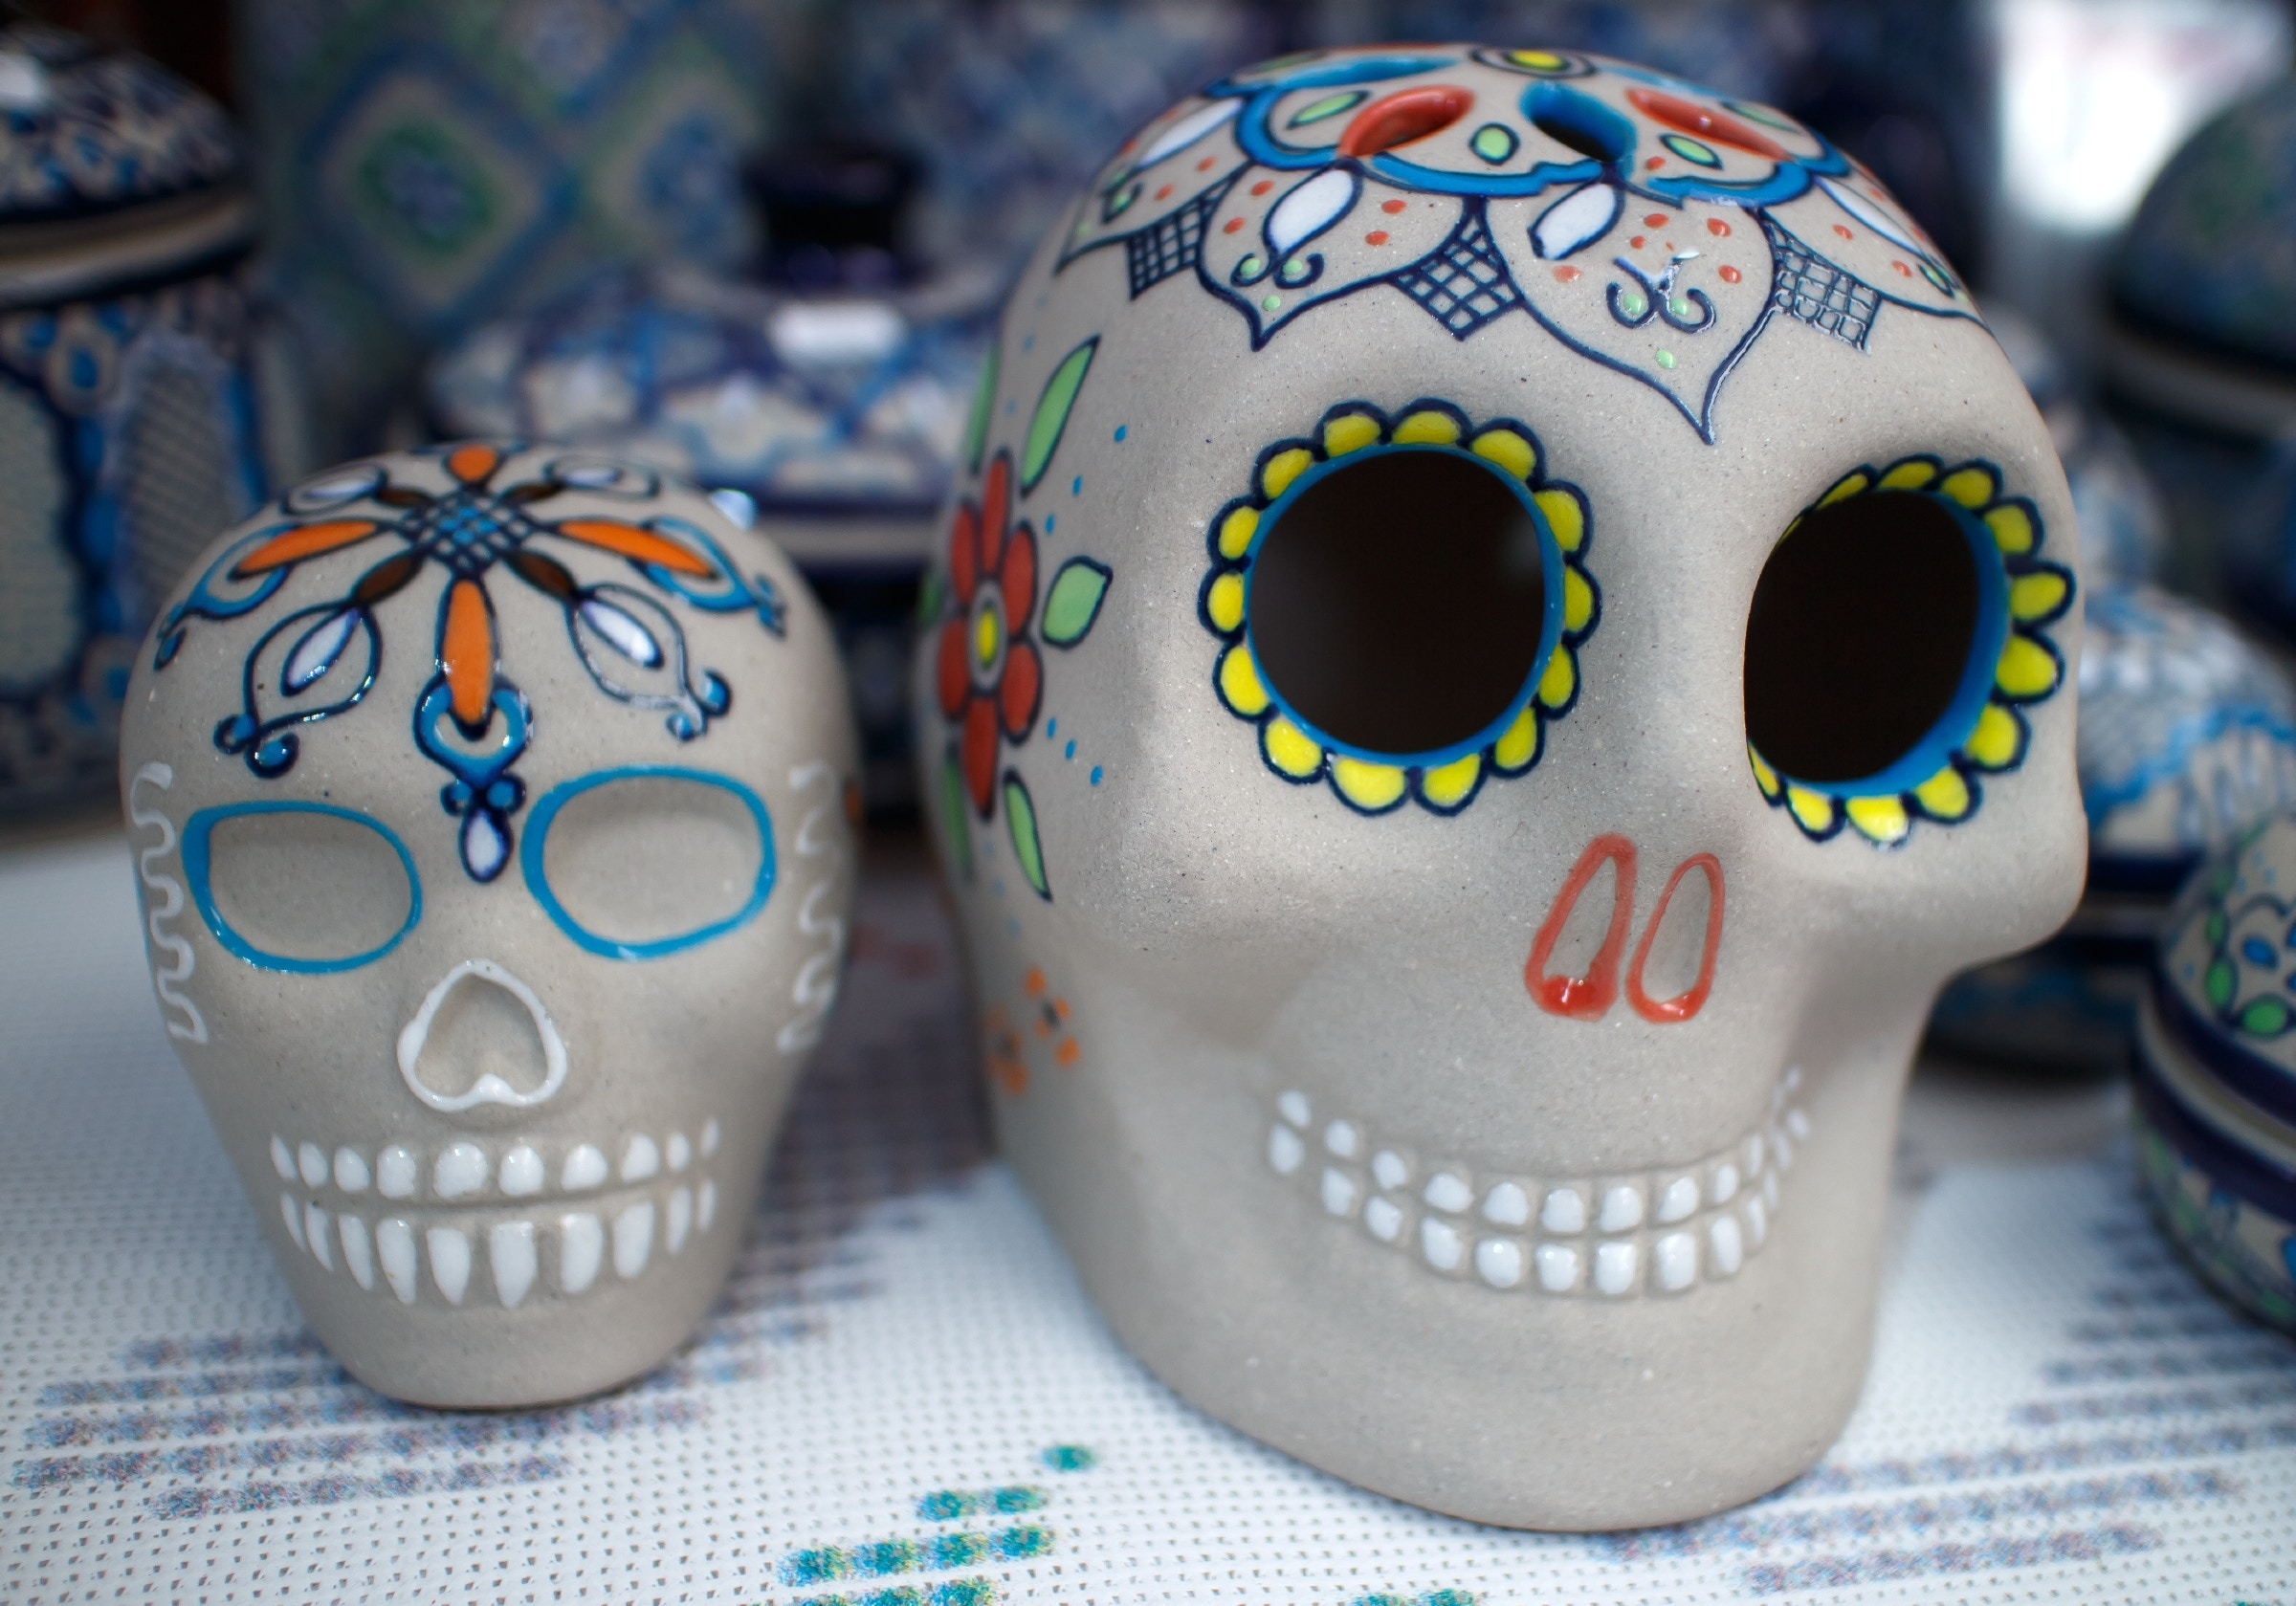 Day of the death. Sugar skulls. Shallow depth of field